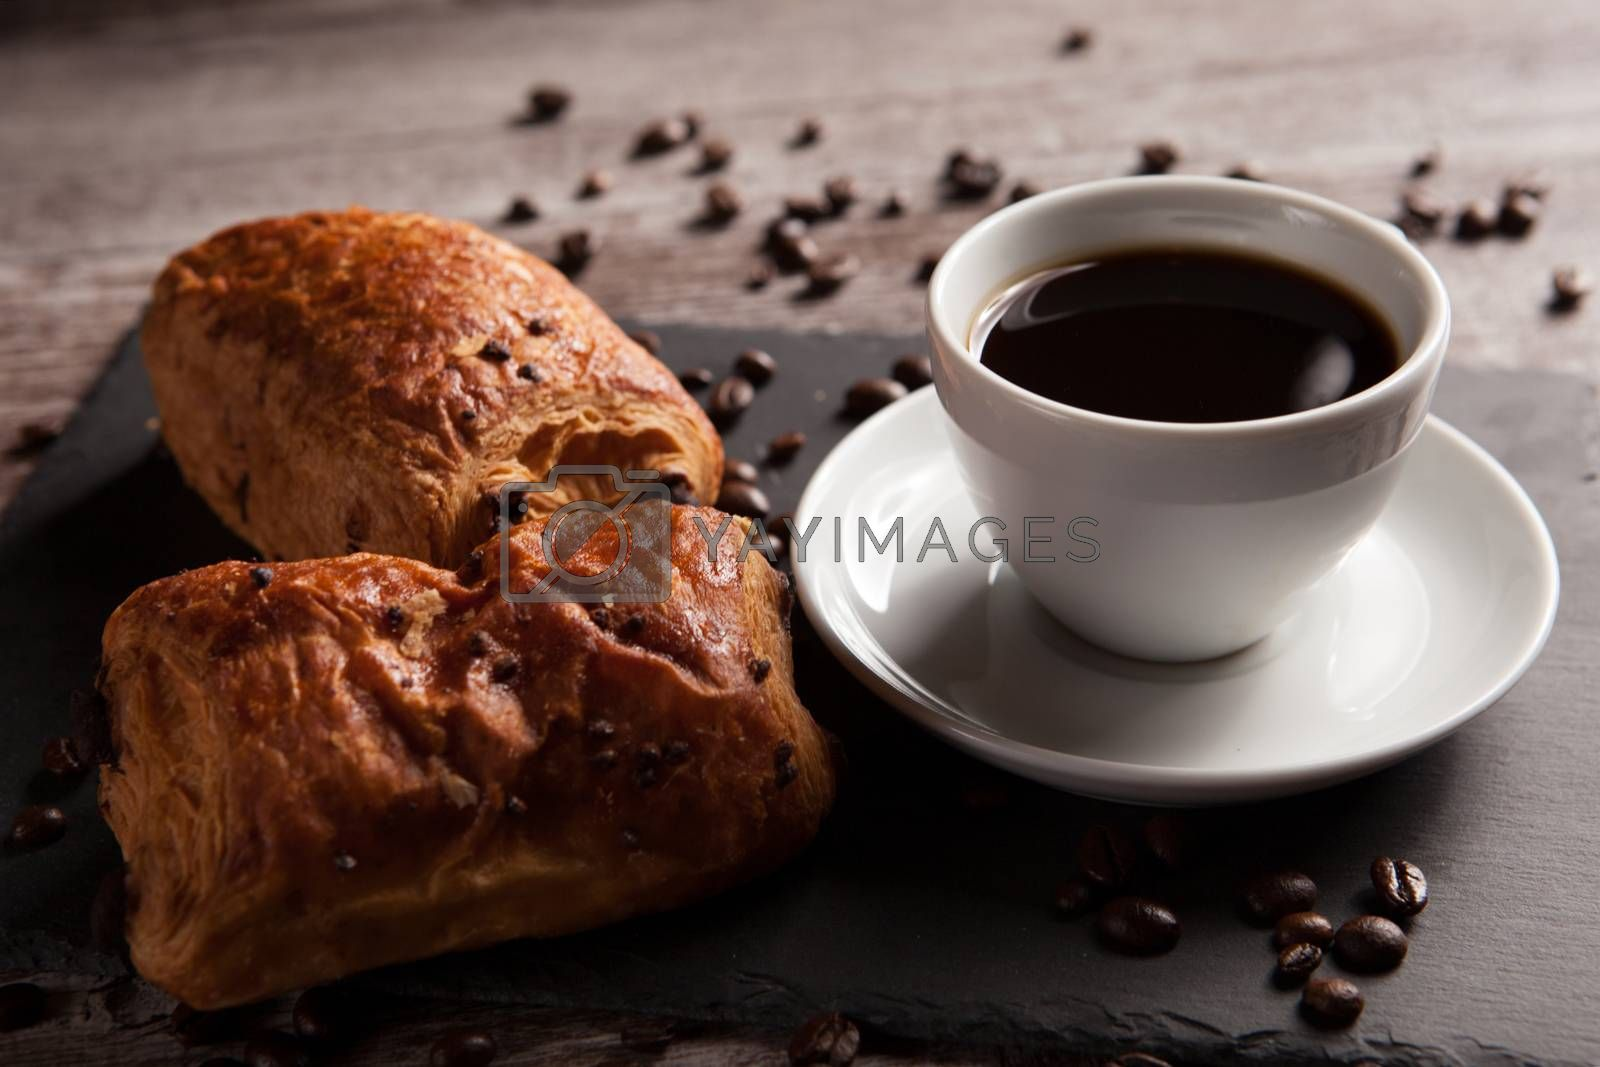 Mug of coffee with delicious pastry and spreaded beans of coffee by DCStudio